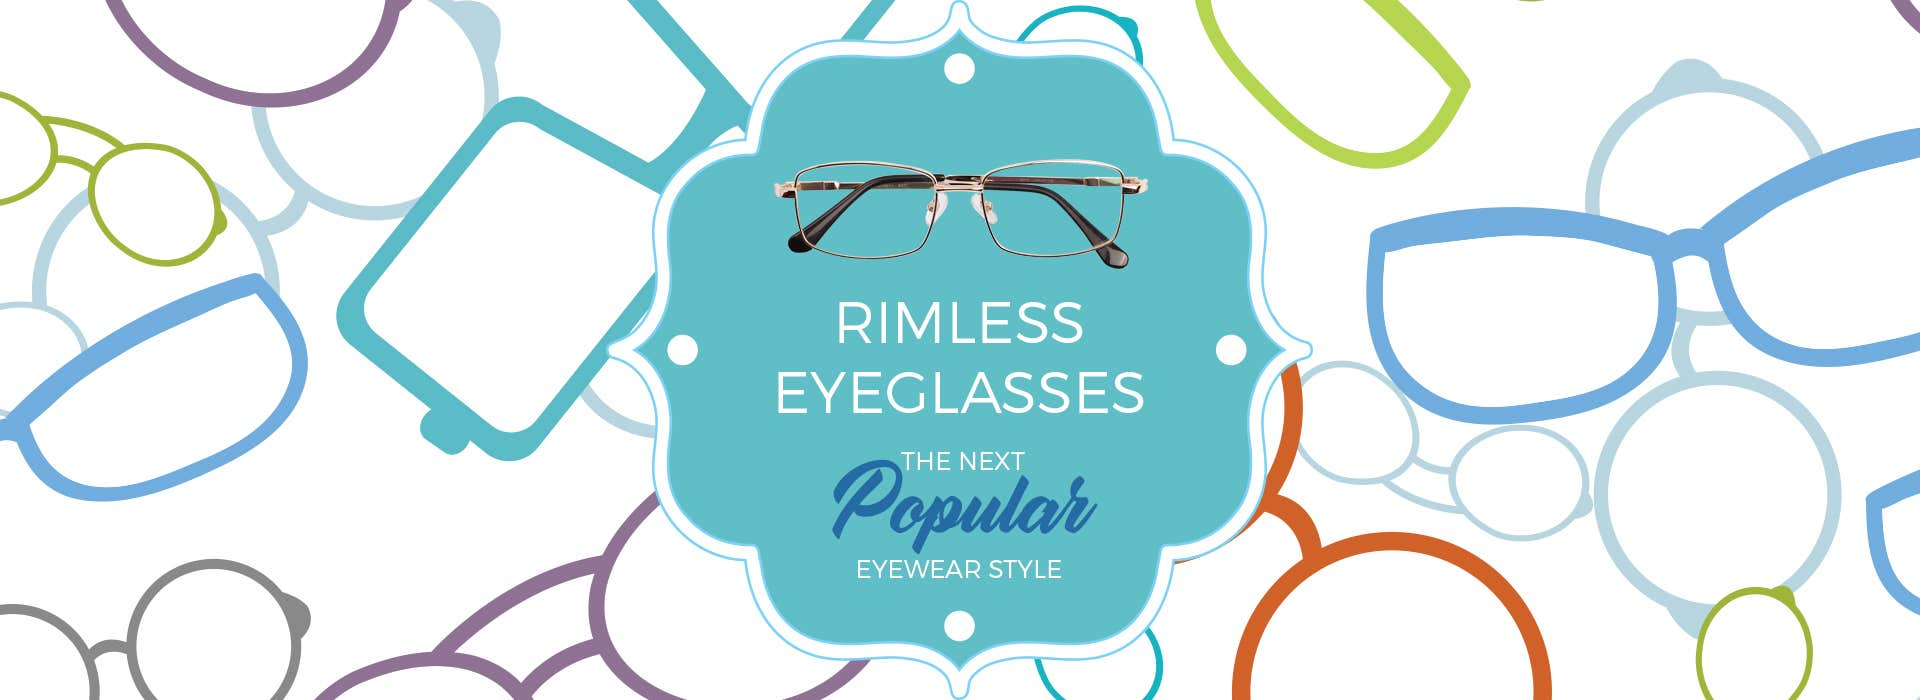 Rimless Eyeglasses - The Next Popular Eyewear Style - Goggles4u.com